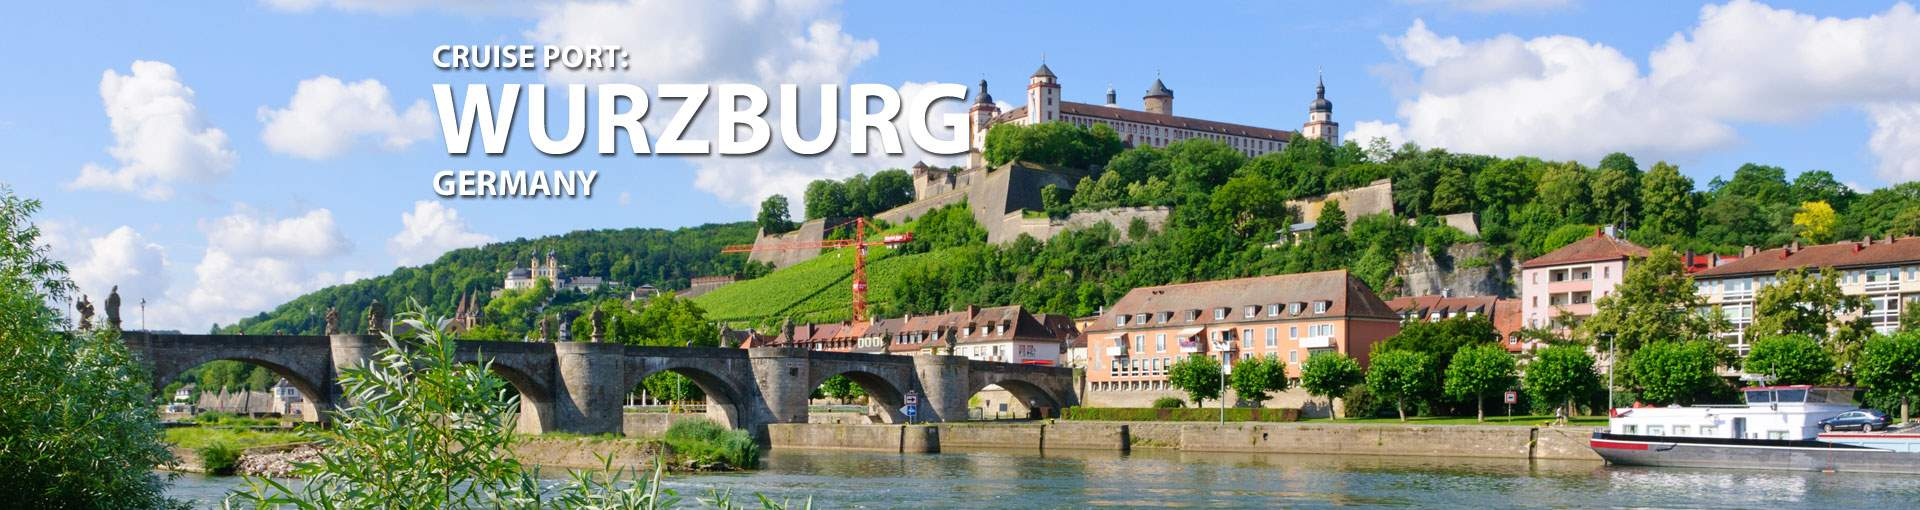 Cruises to Wurzburg, Germany